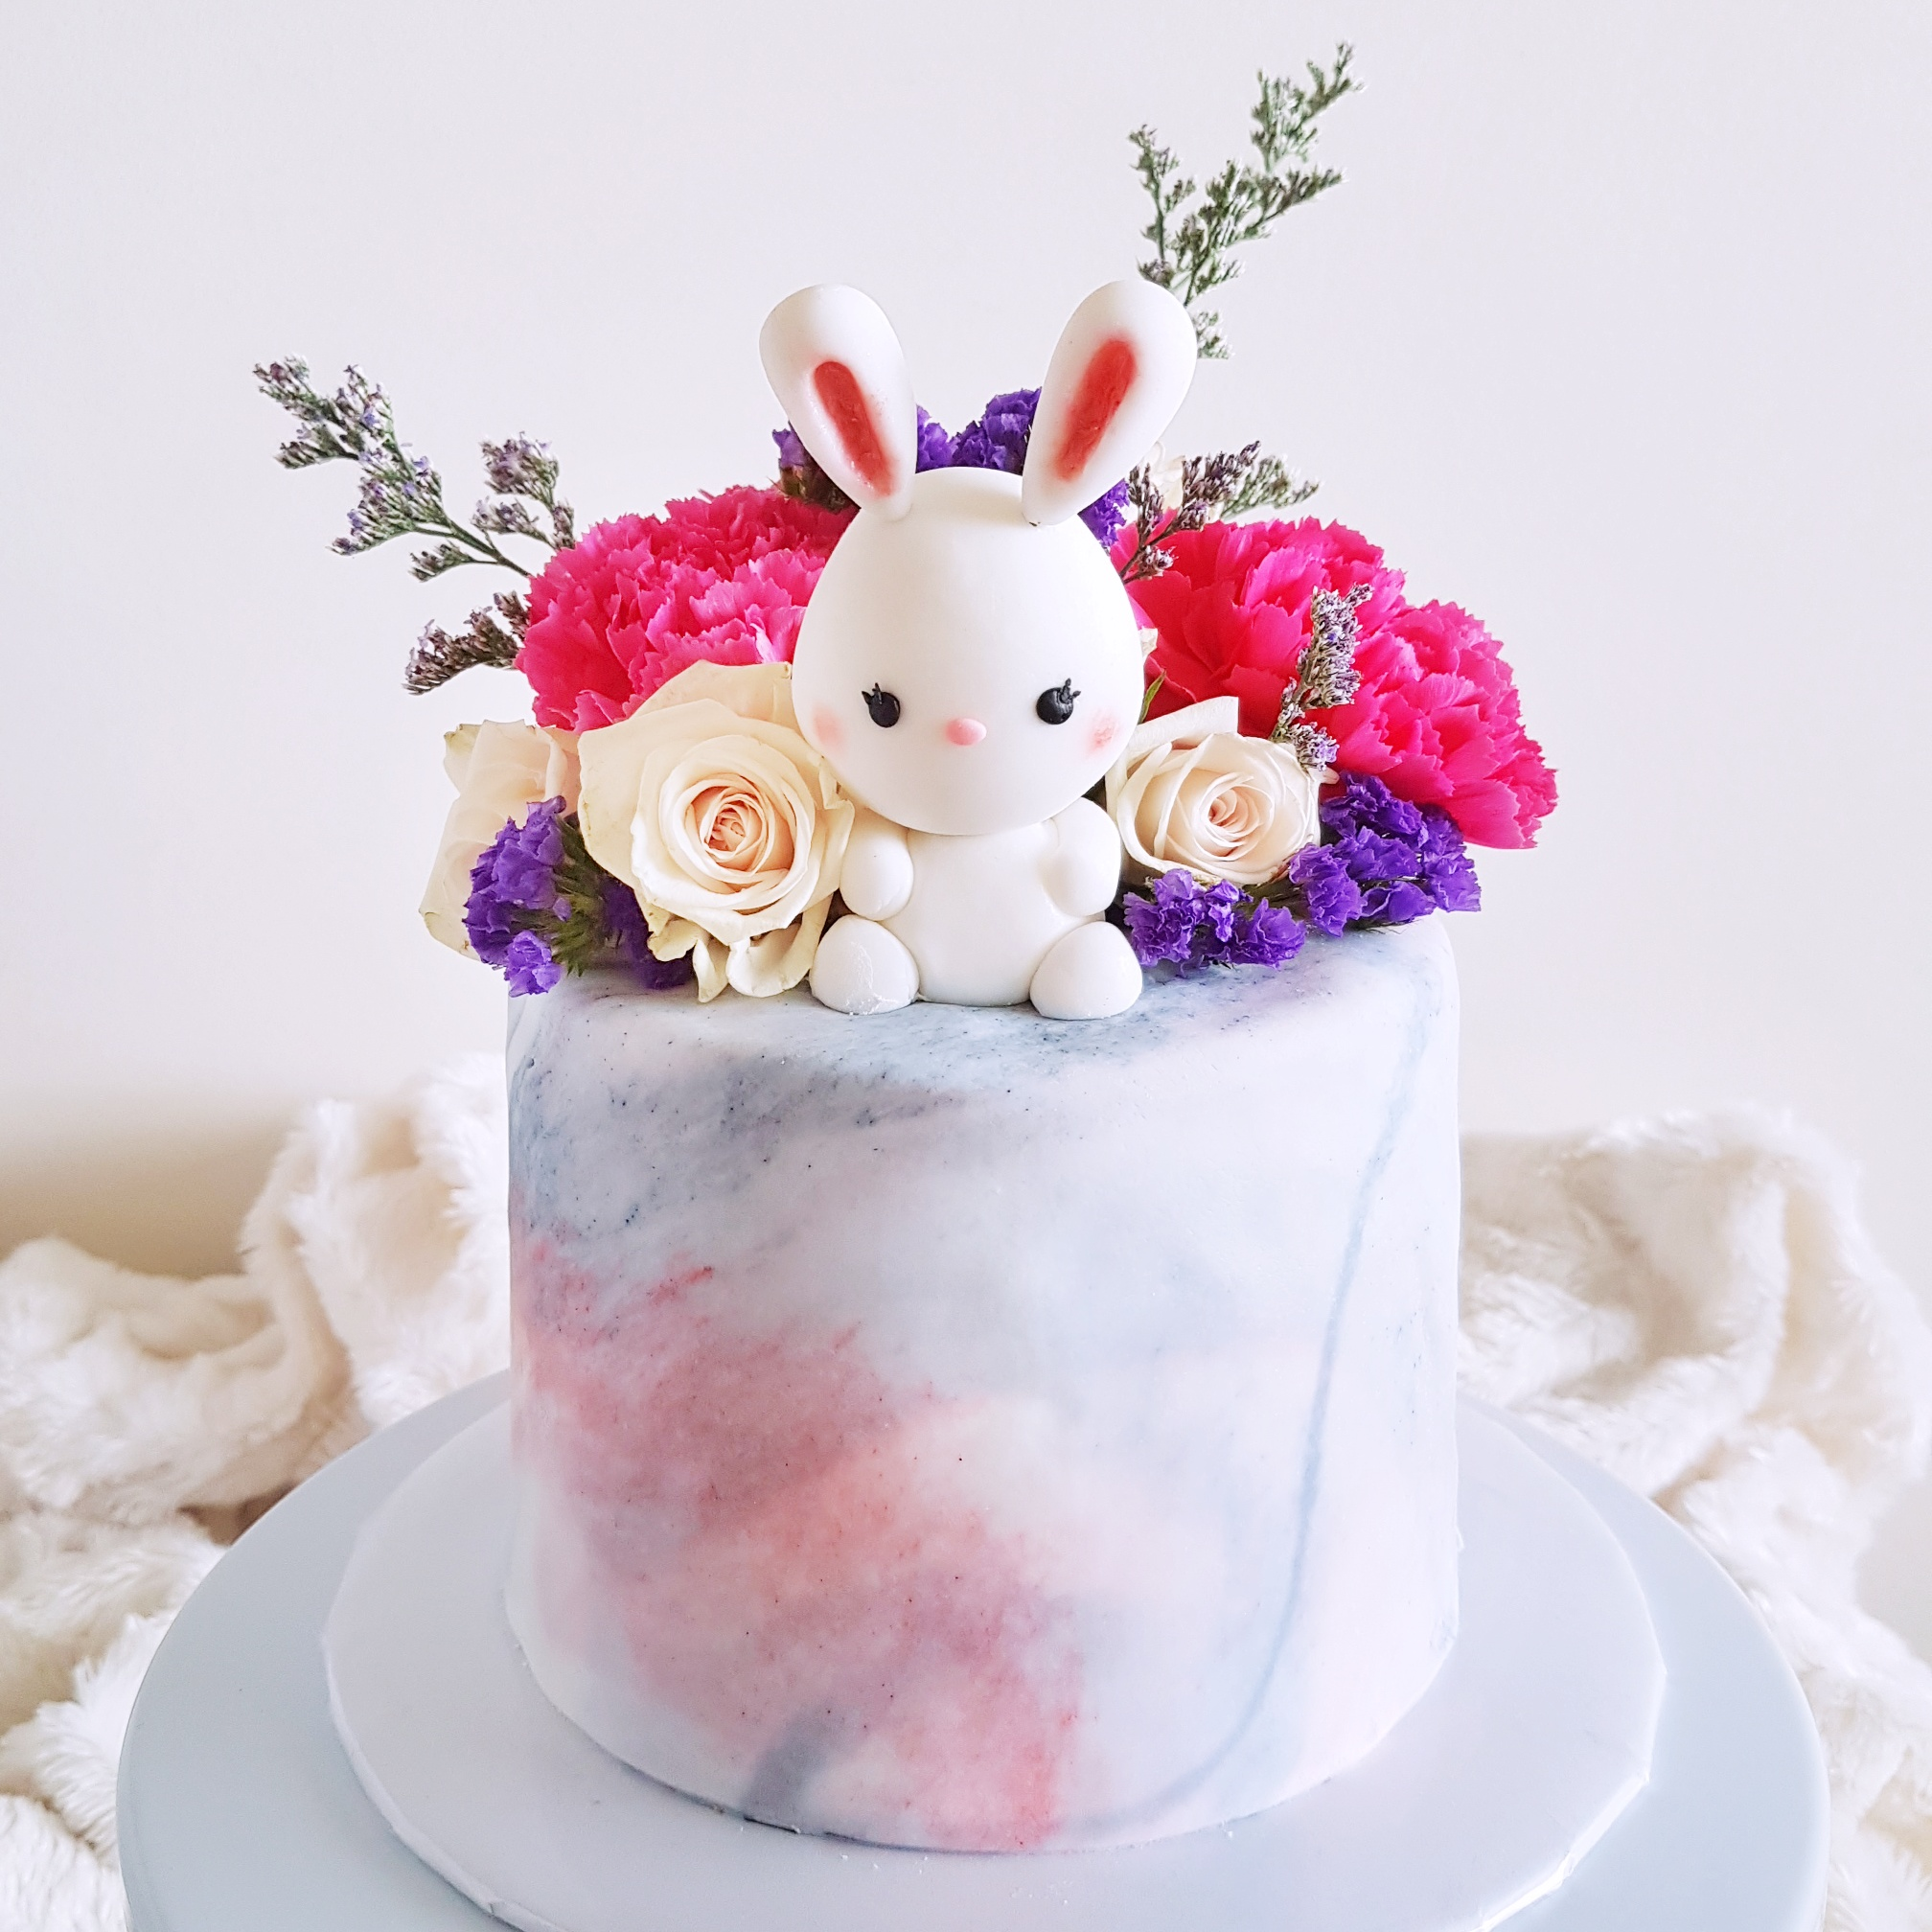 Floral Marbled Cake with Bunny